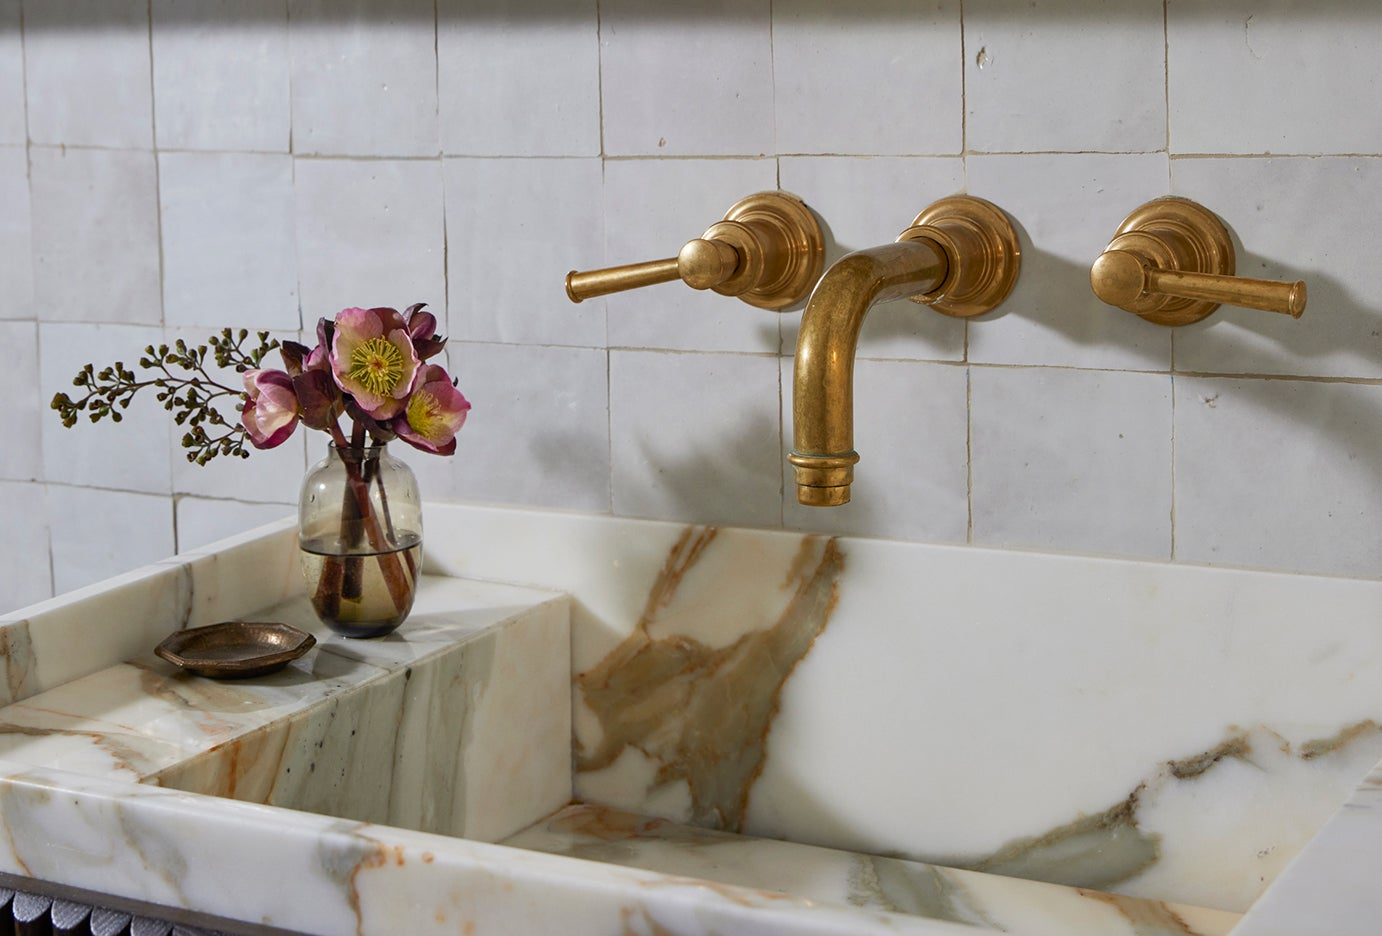 stone sink with brass mounted facuet